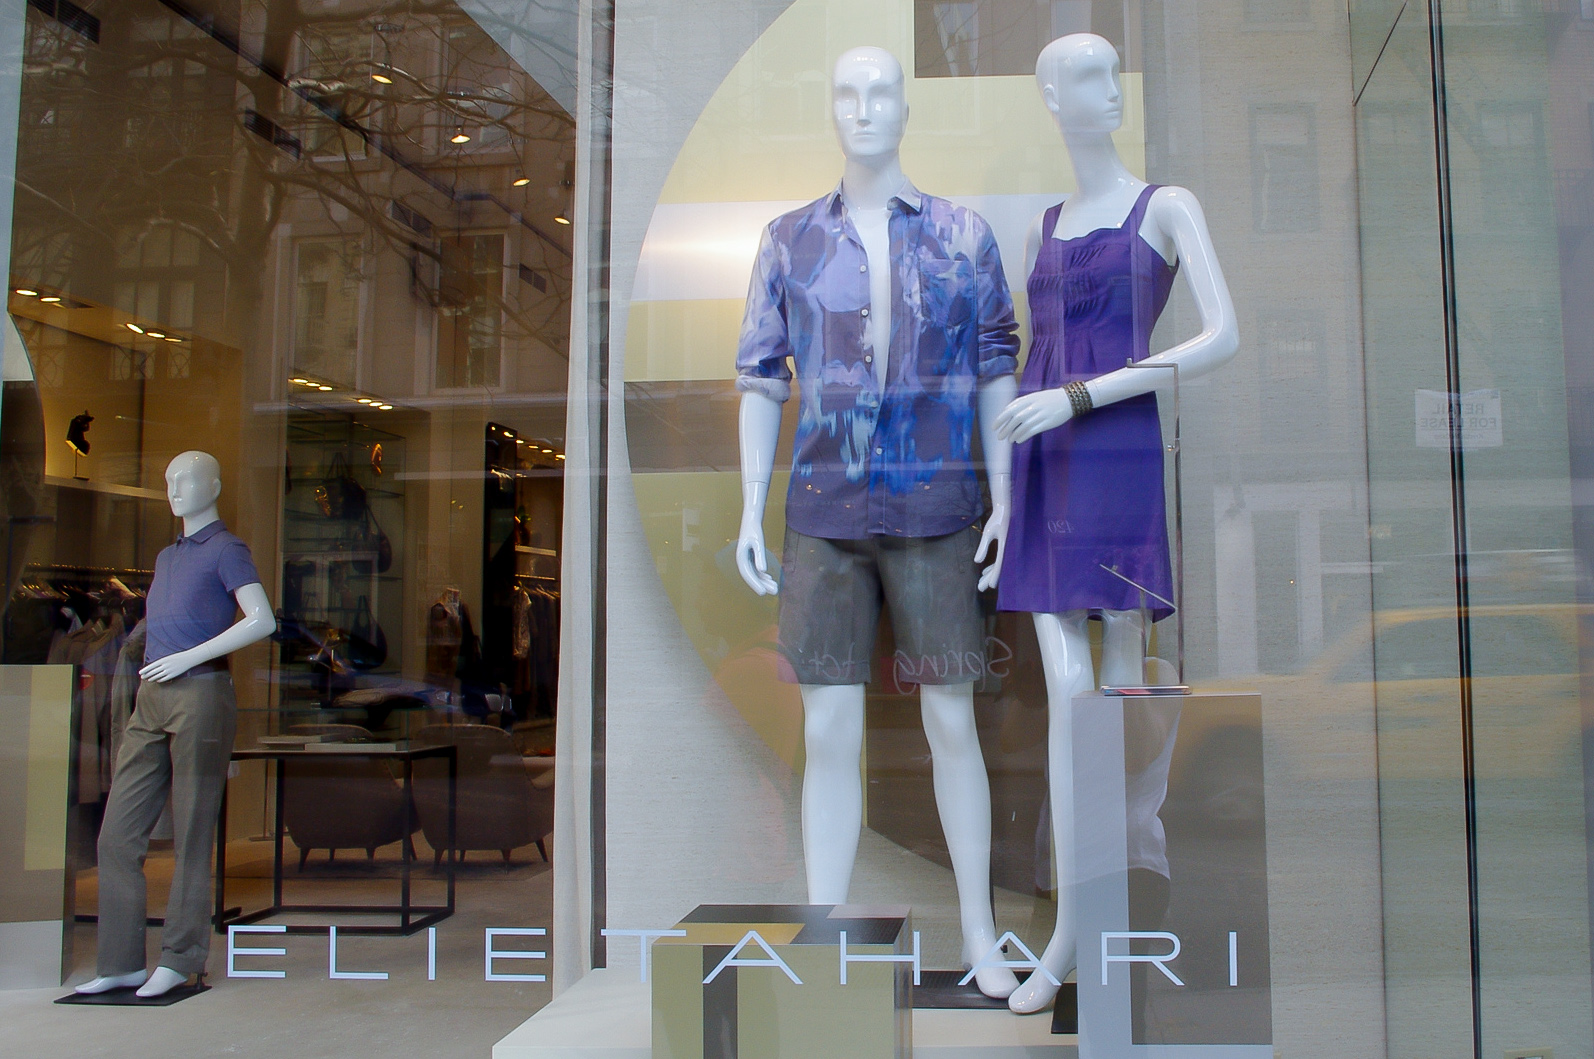 Fashion at Elie Tahari in New York. Photo by alphacityguides.